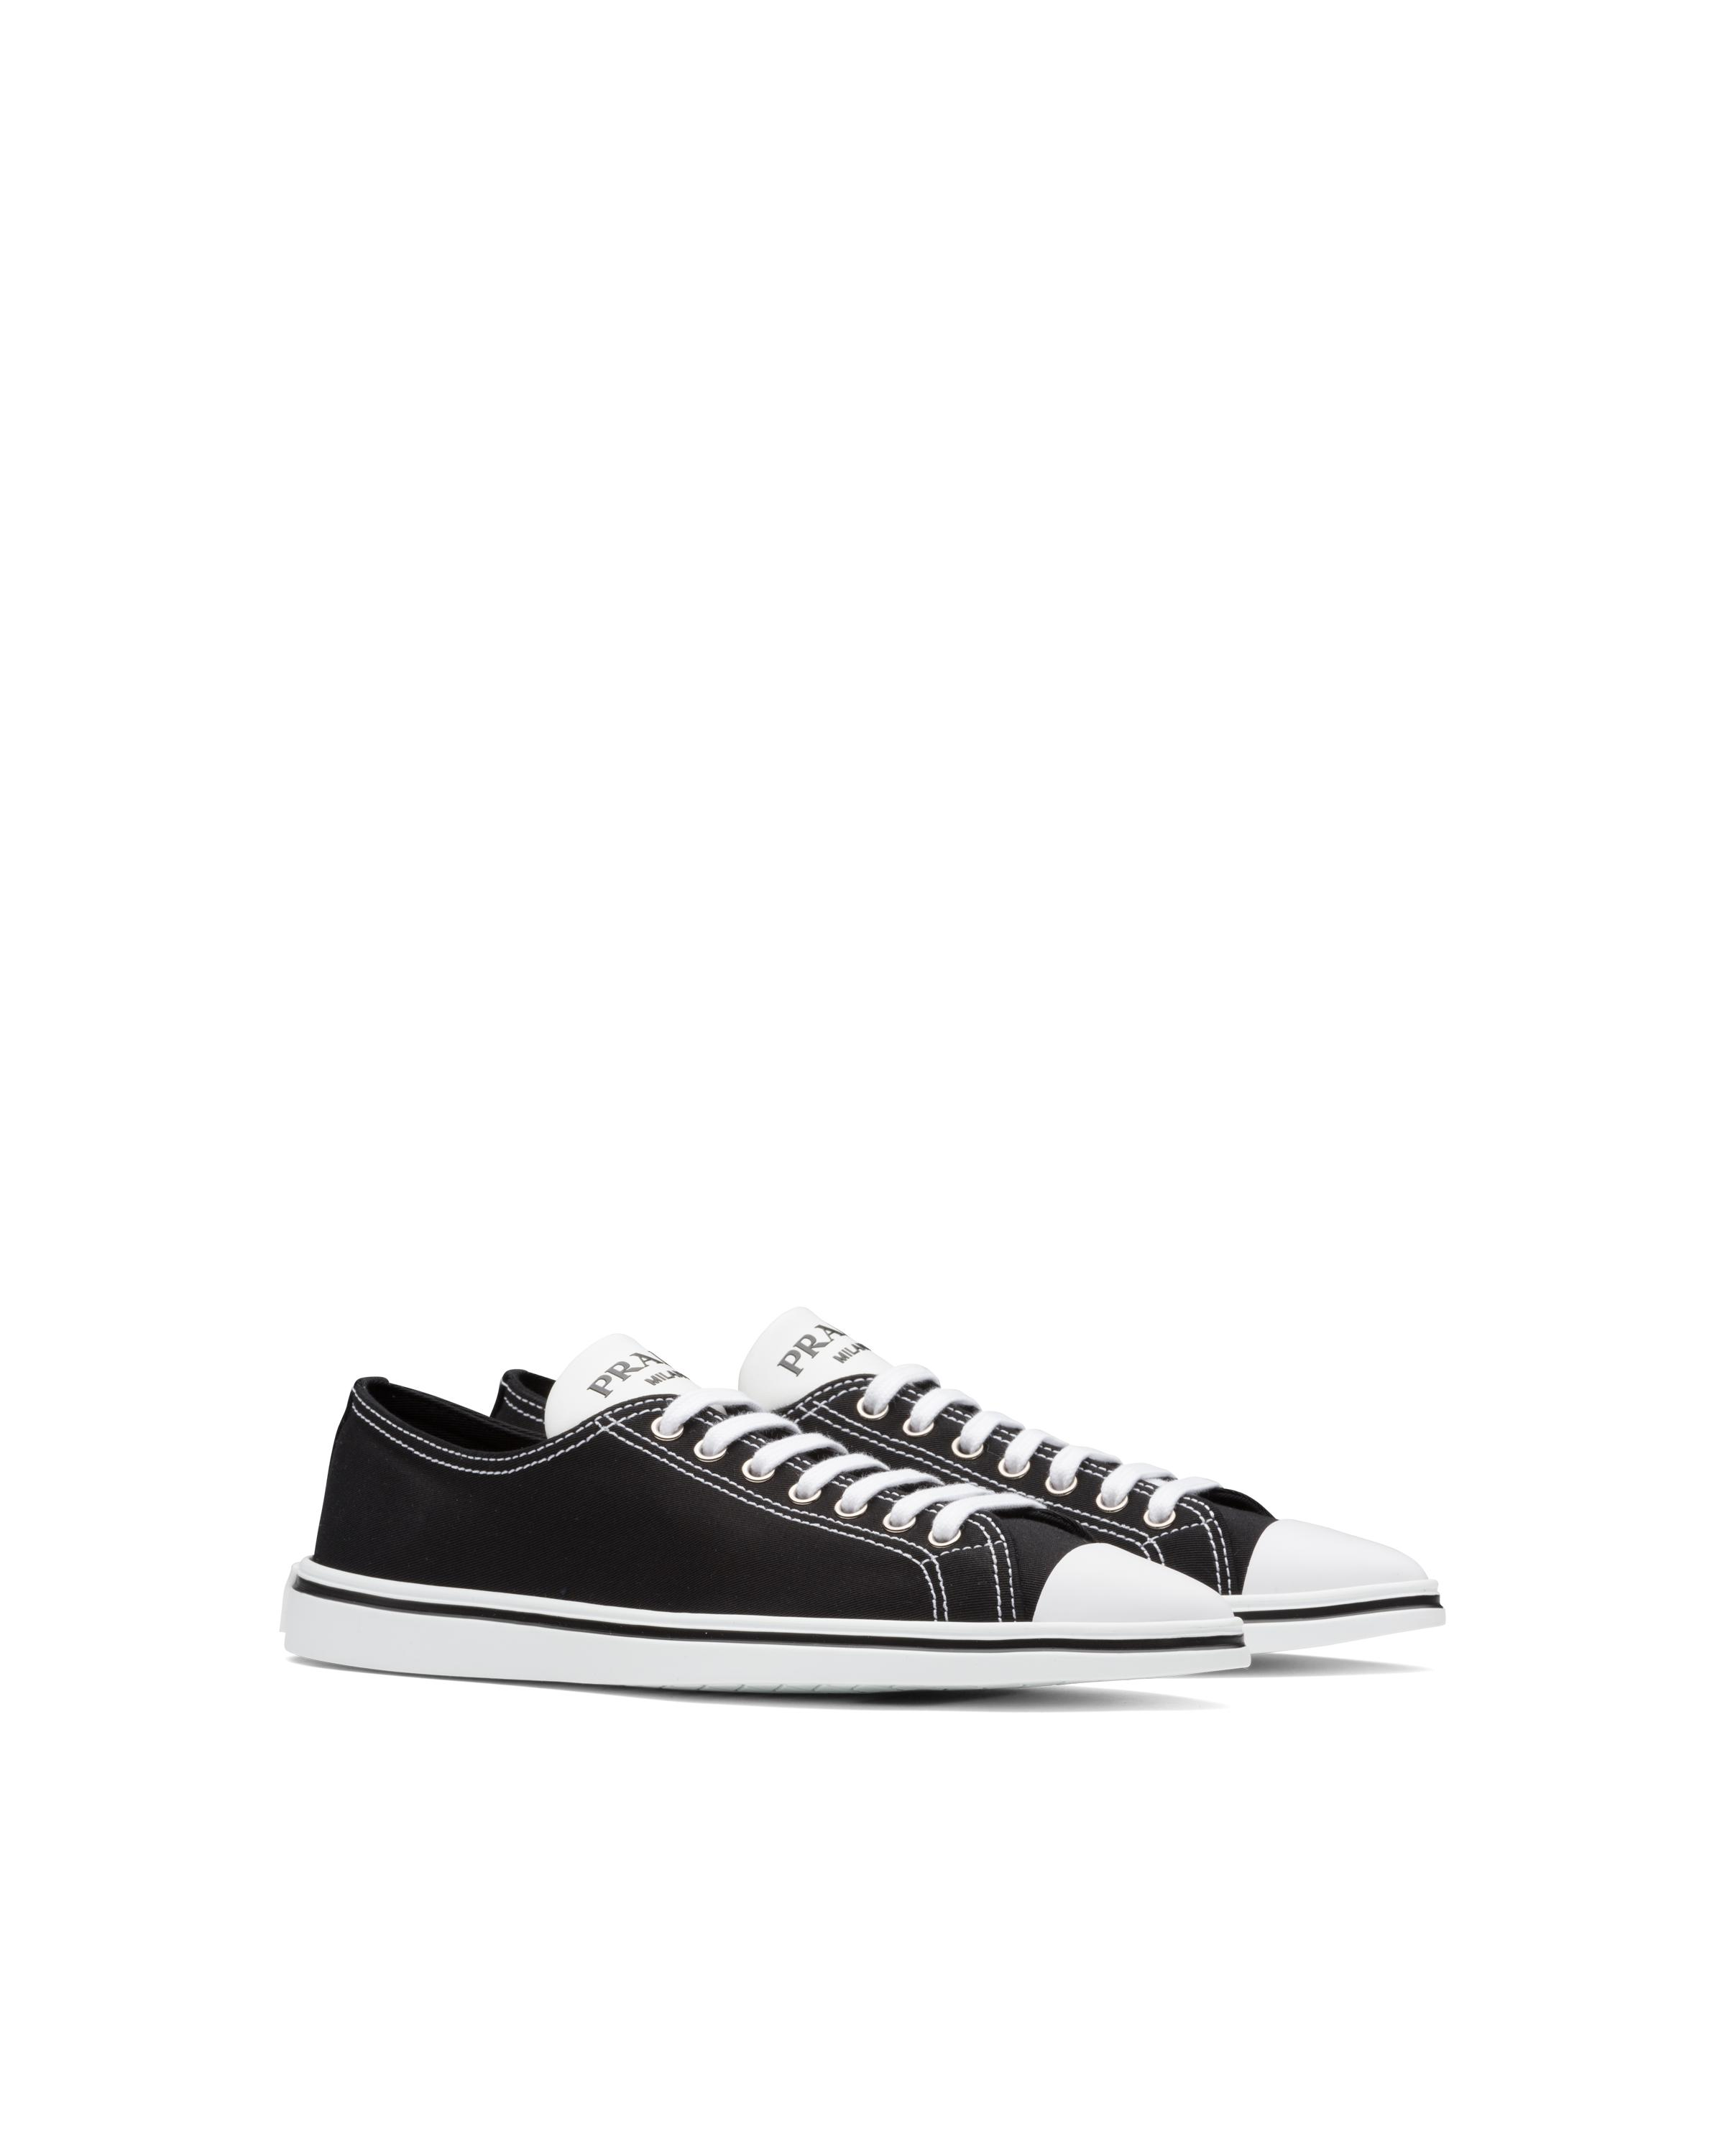 Synthesis Sneakers Women Black 5